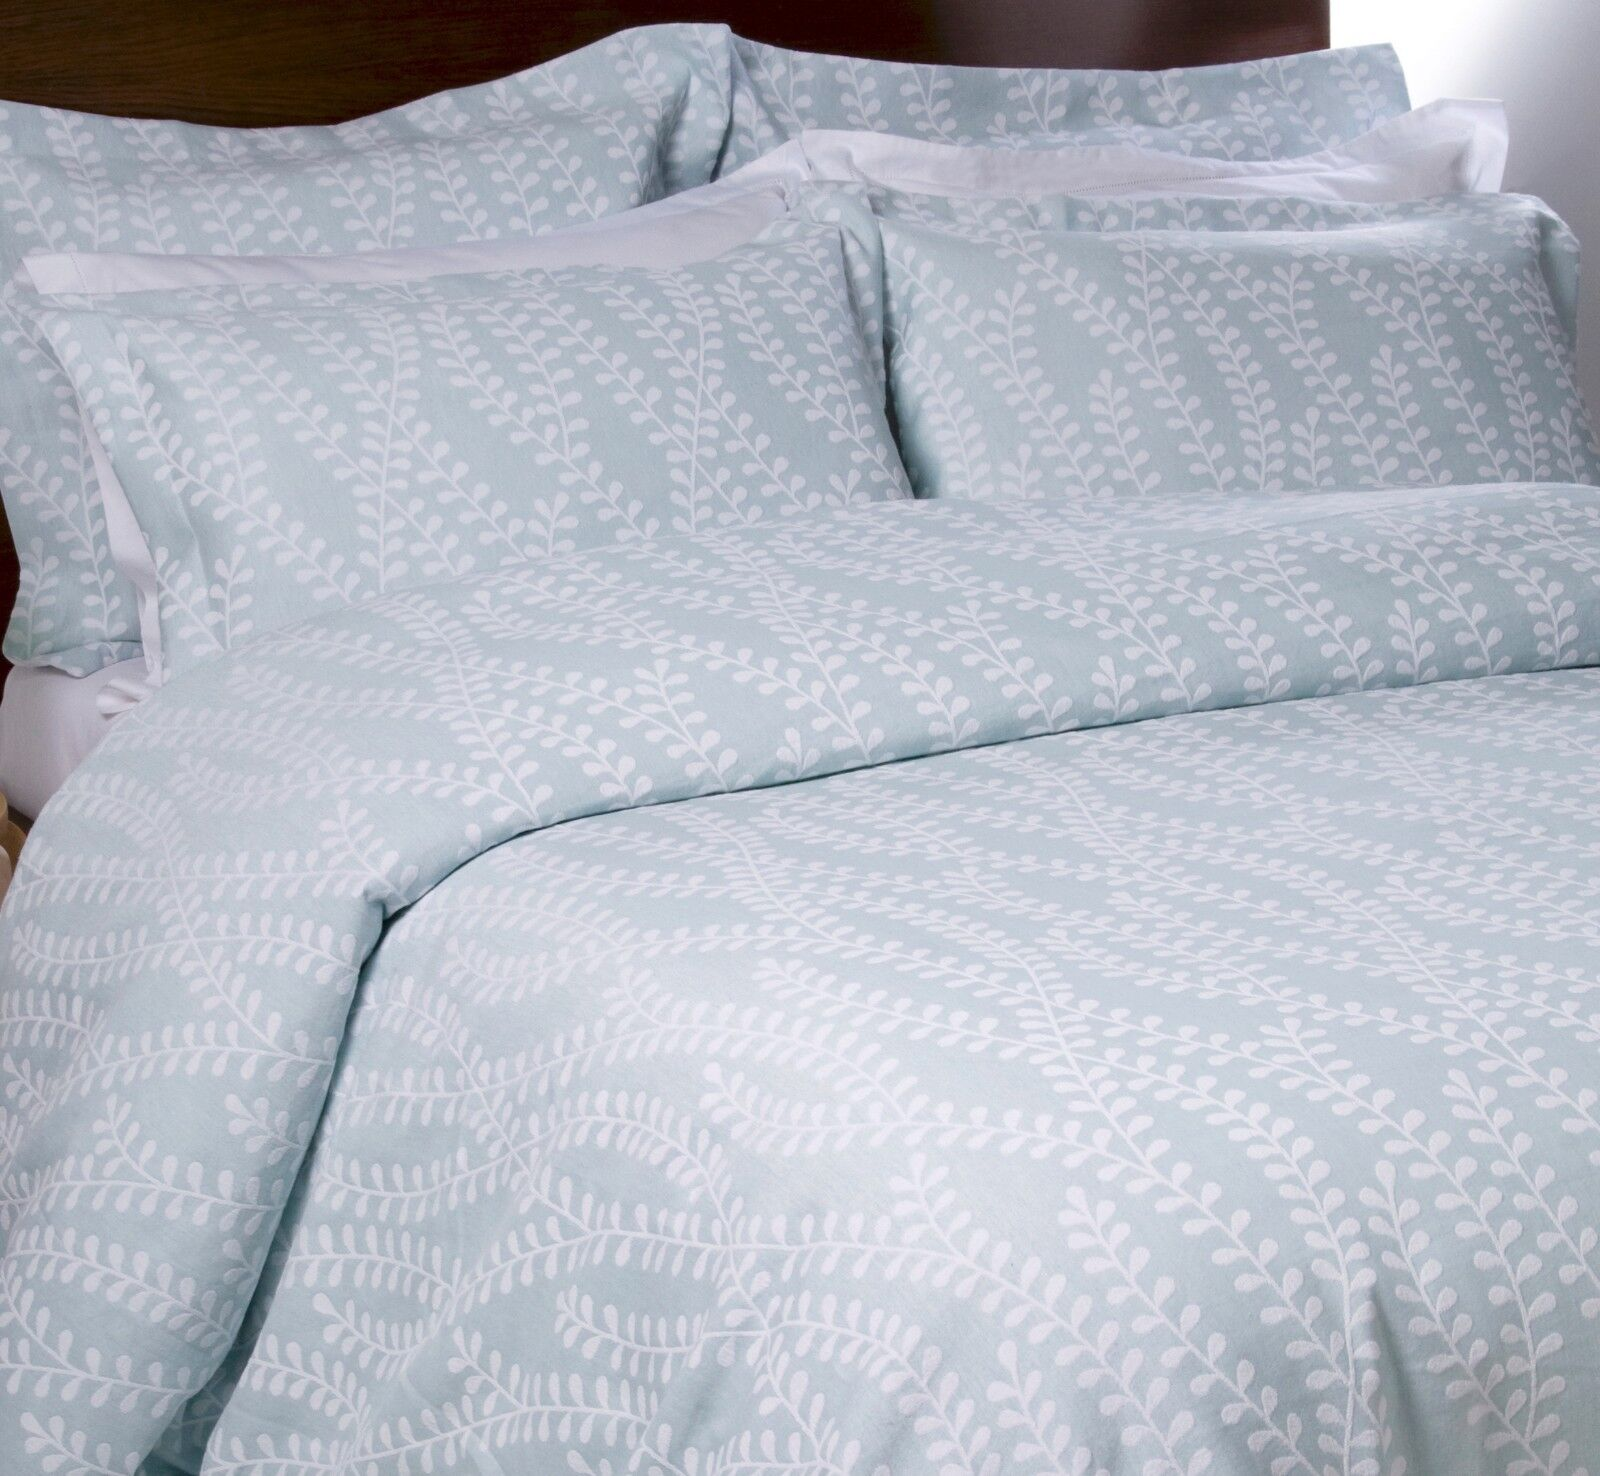 Elegant Luxury Woven Leaf Jacquard 100% Percale Cotton Bed Linen Duvet Cover Set